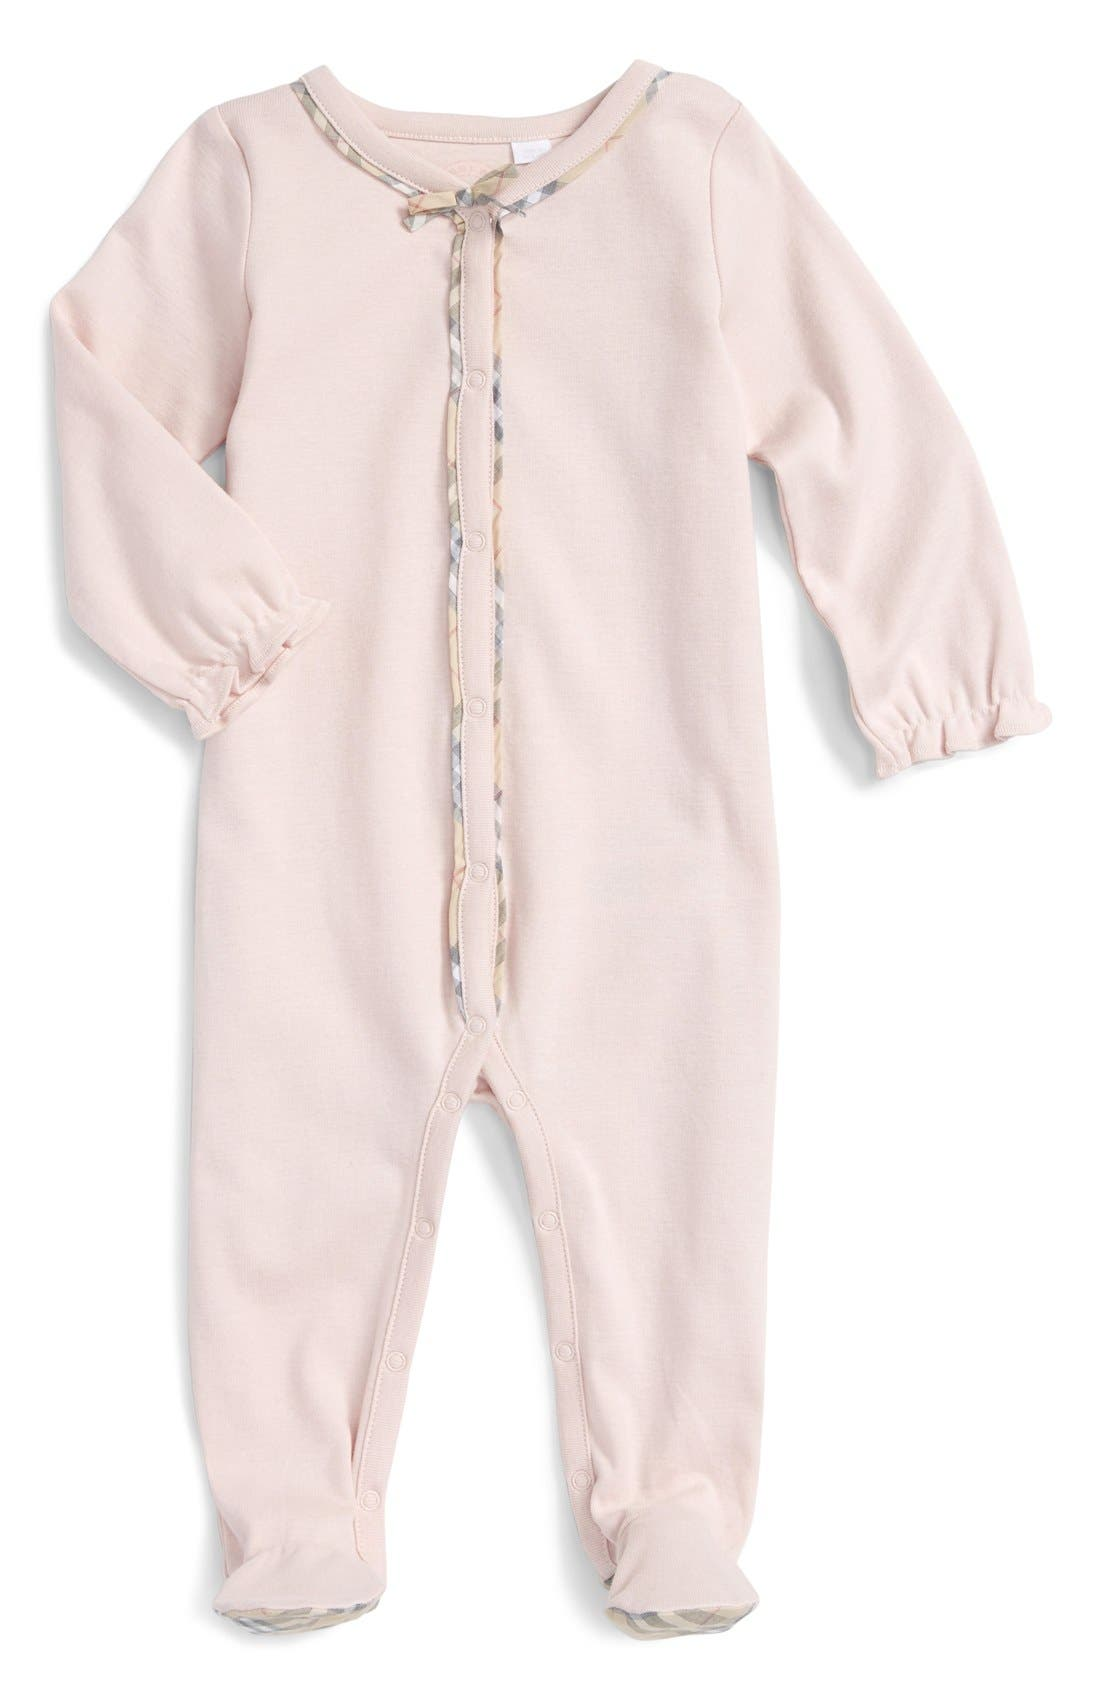 BURBERRY 'Jacey' Cotton Footie